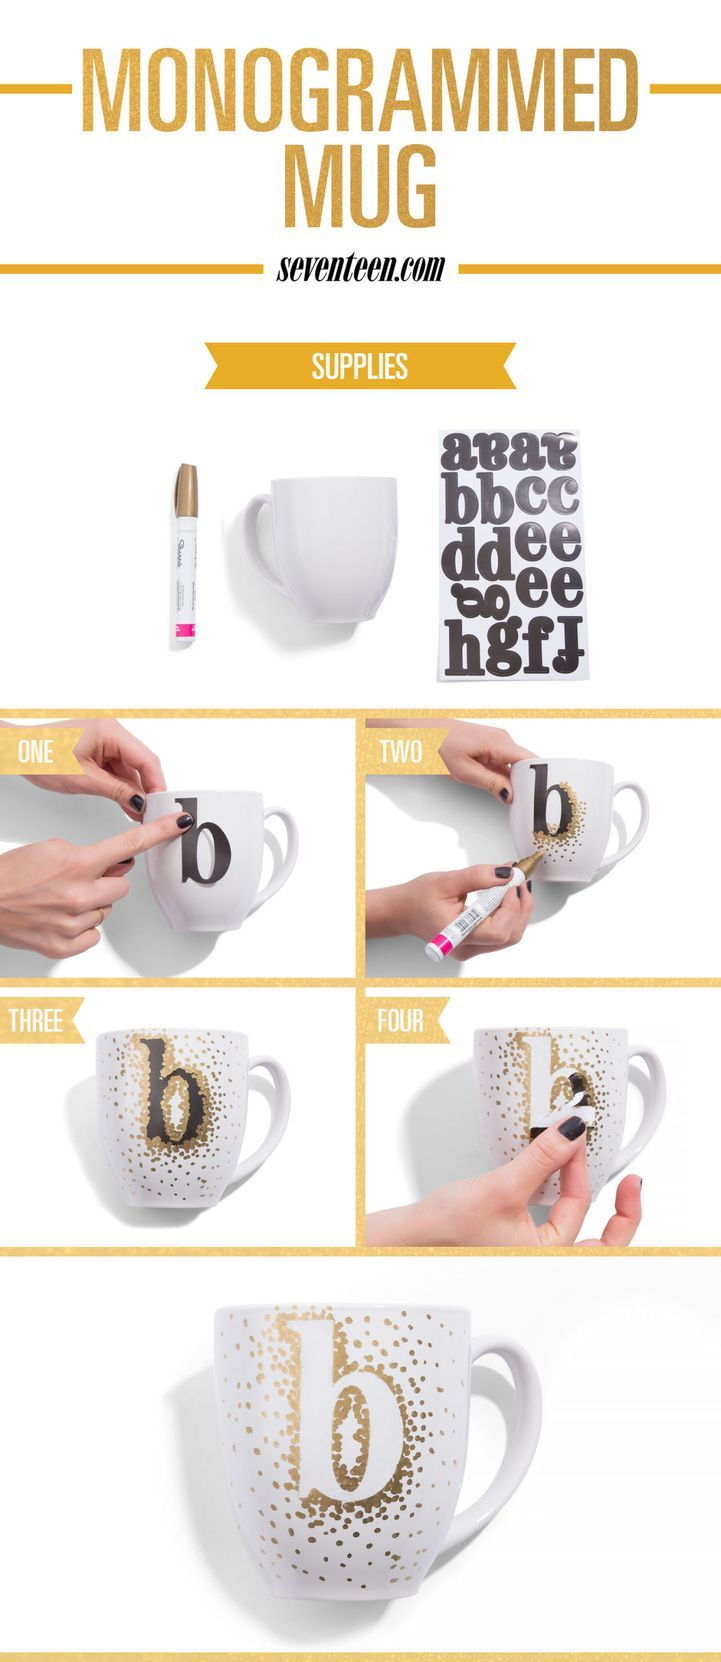 List of Cool DIY Gifts from seventeen.com